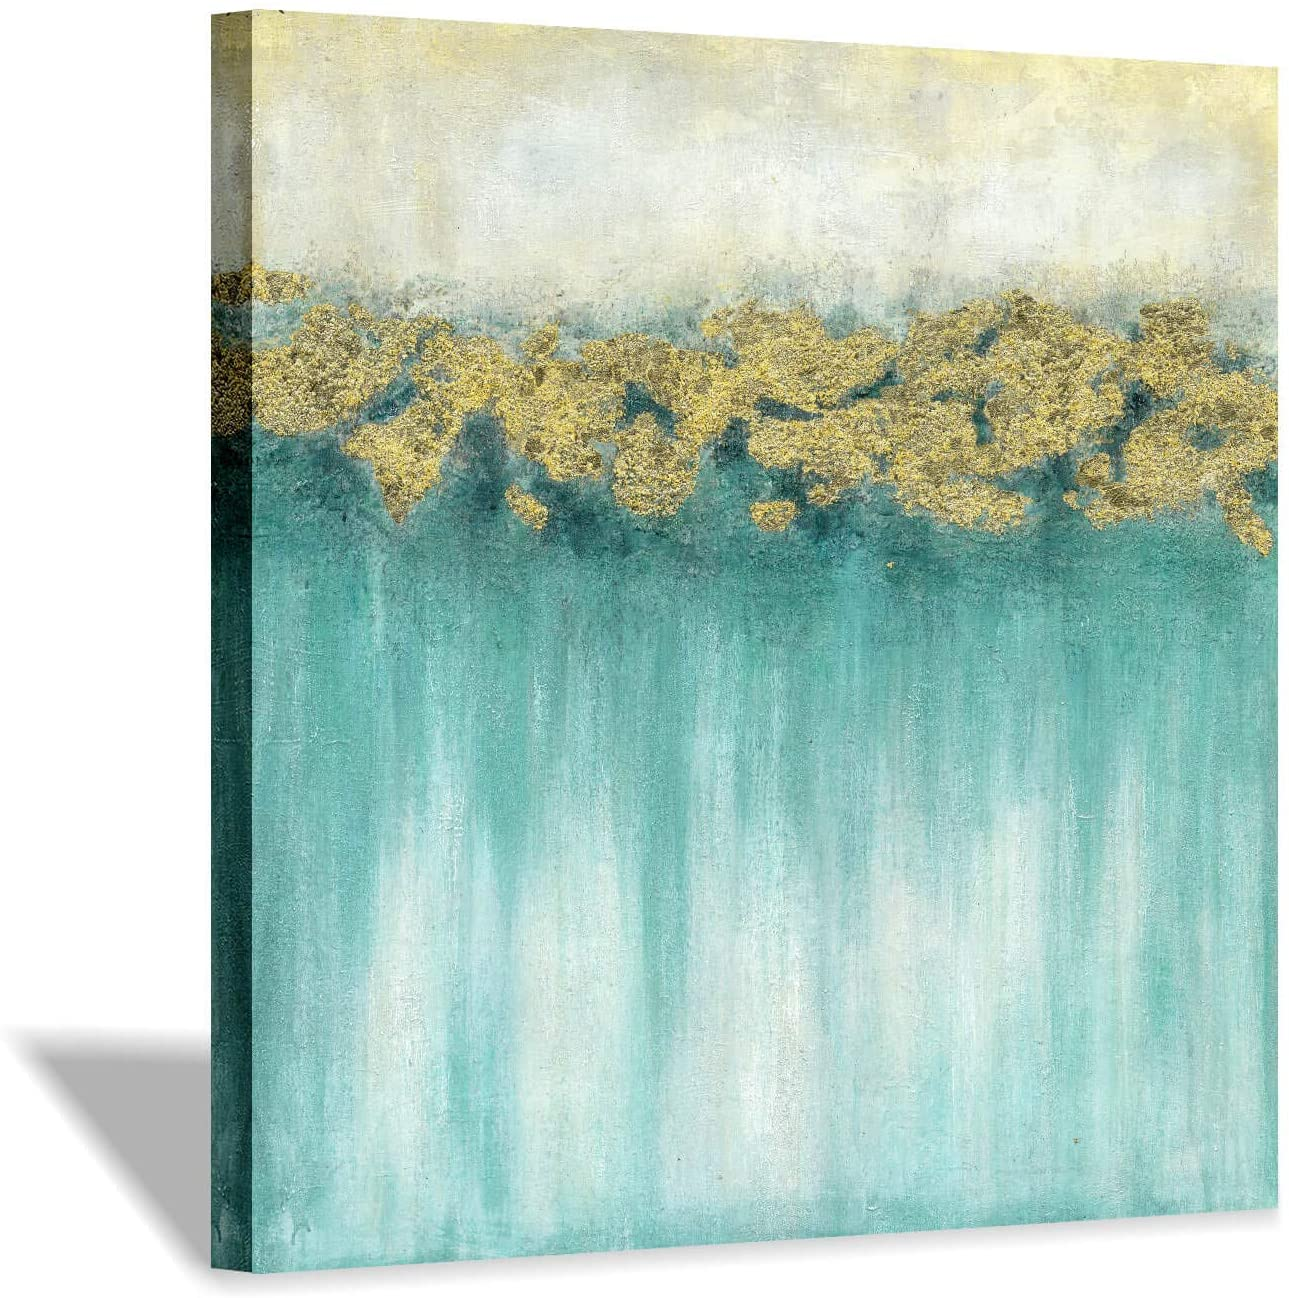 Teal Abstract Canvas Wall Art: Nature Green Lake Artwork Painting with Gold Foils Rustic Textured Art Picture for Living Room(28'' x 28'' x 1 Panel)